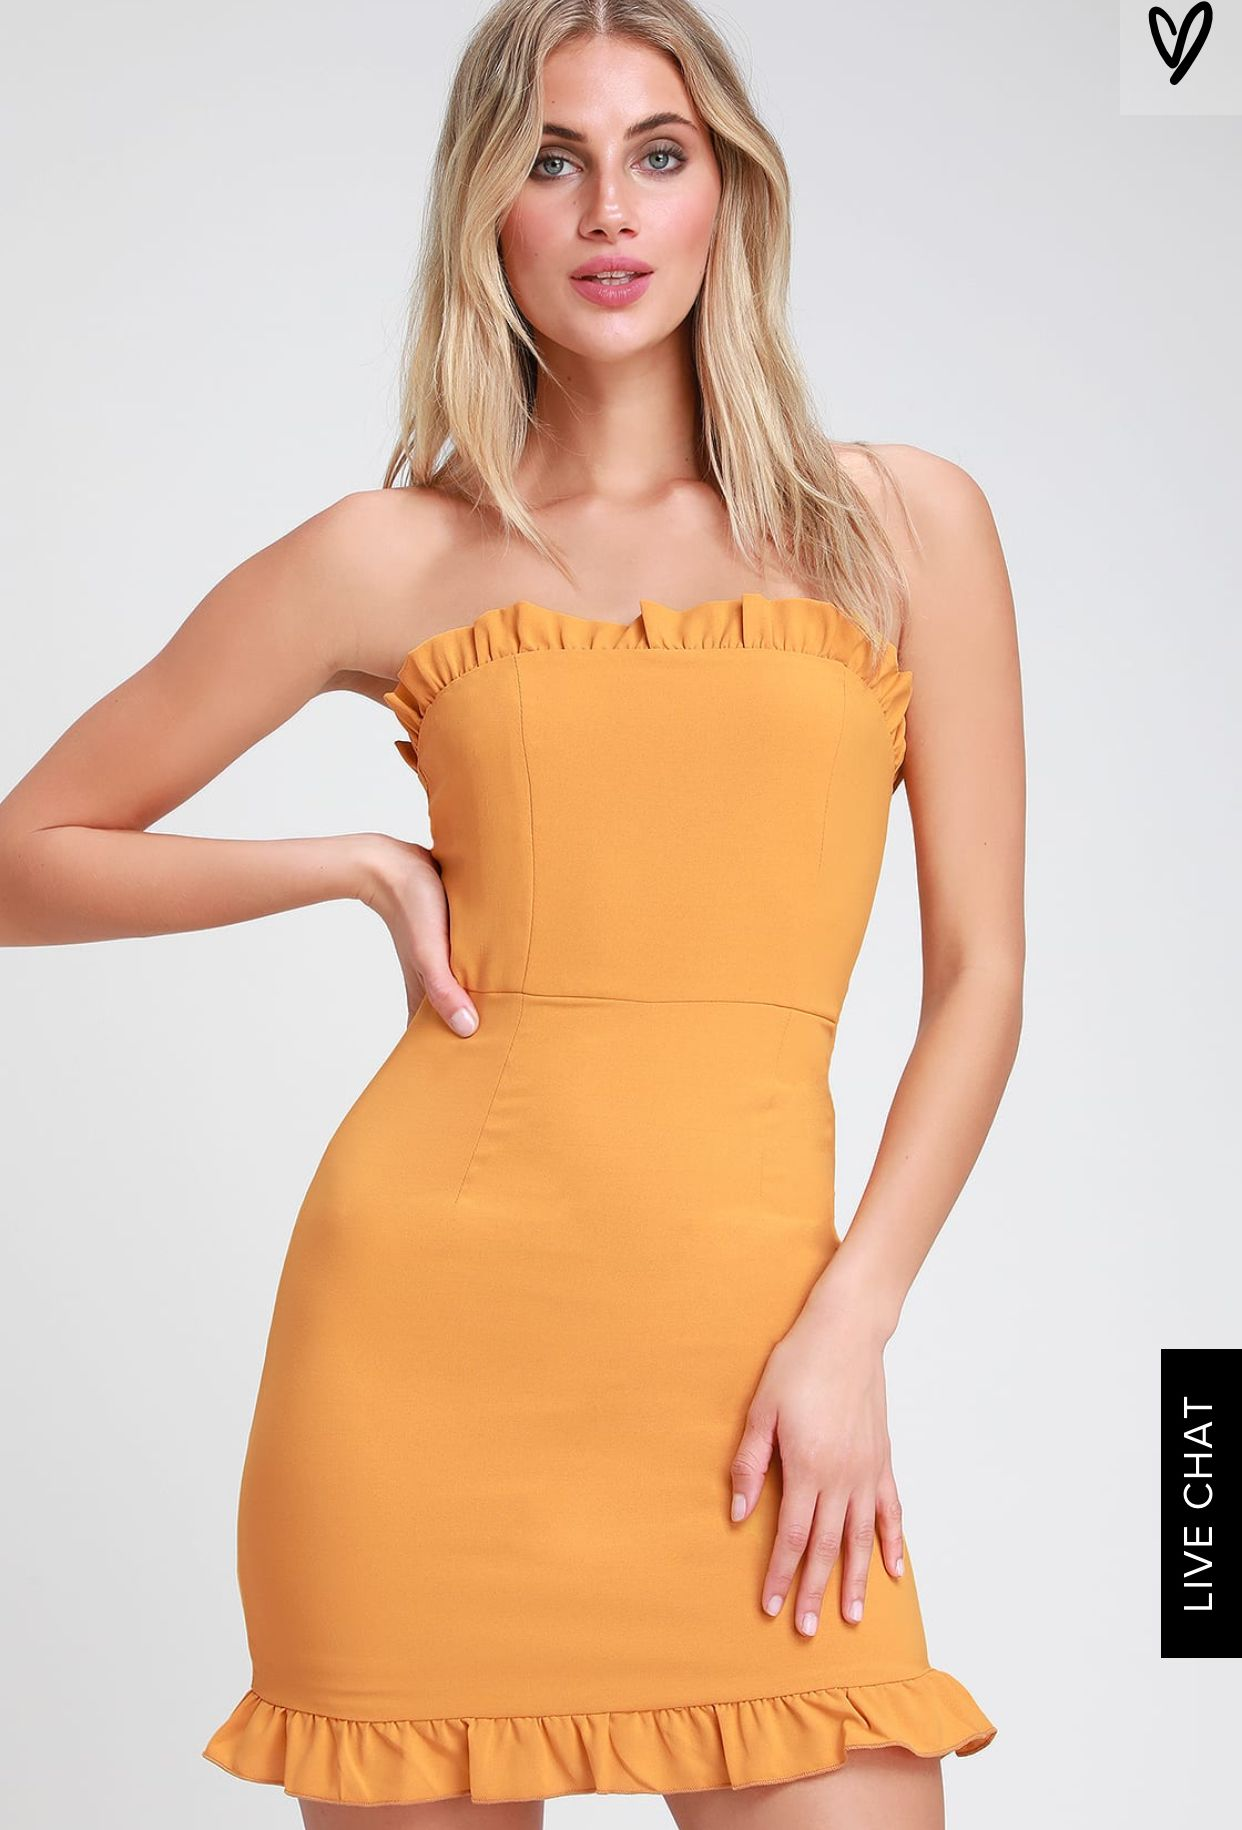 Pin By Sophie Fitzgerald On Senior Year Hoco Ideas Yellow Dress Summer Yellow Strapless Dress Cocktail Dress Yellow [ 1830 x 1242 Pixel ]